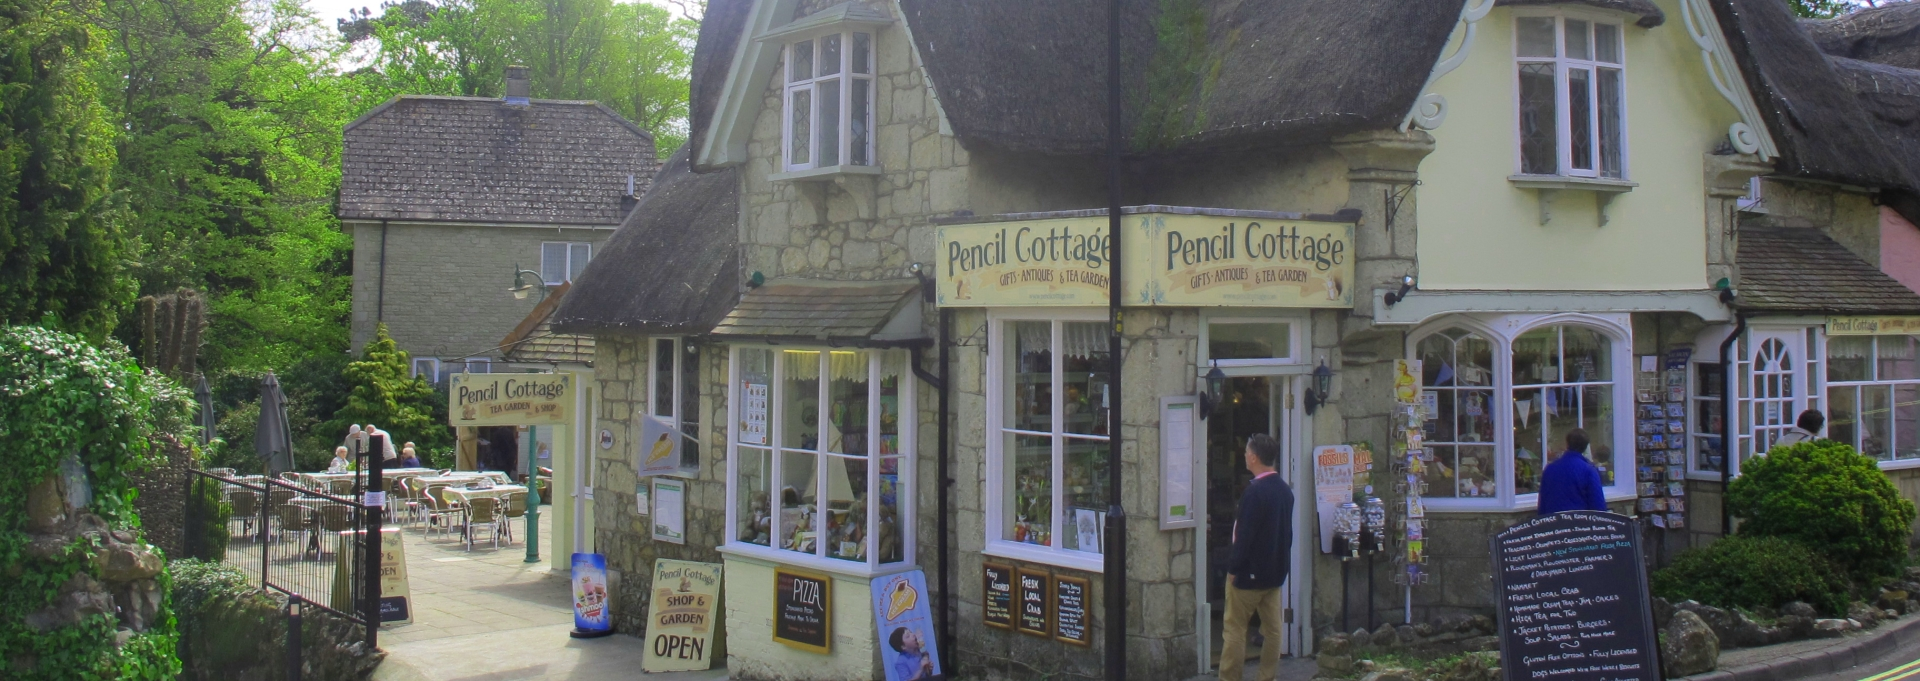 PENCIL COTTAGE Isle of Wight